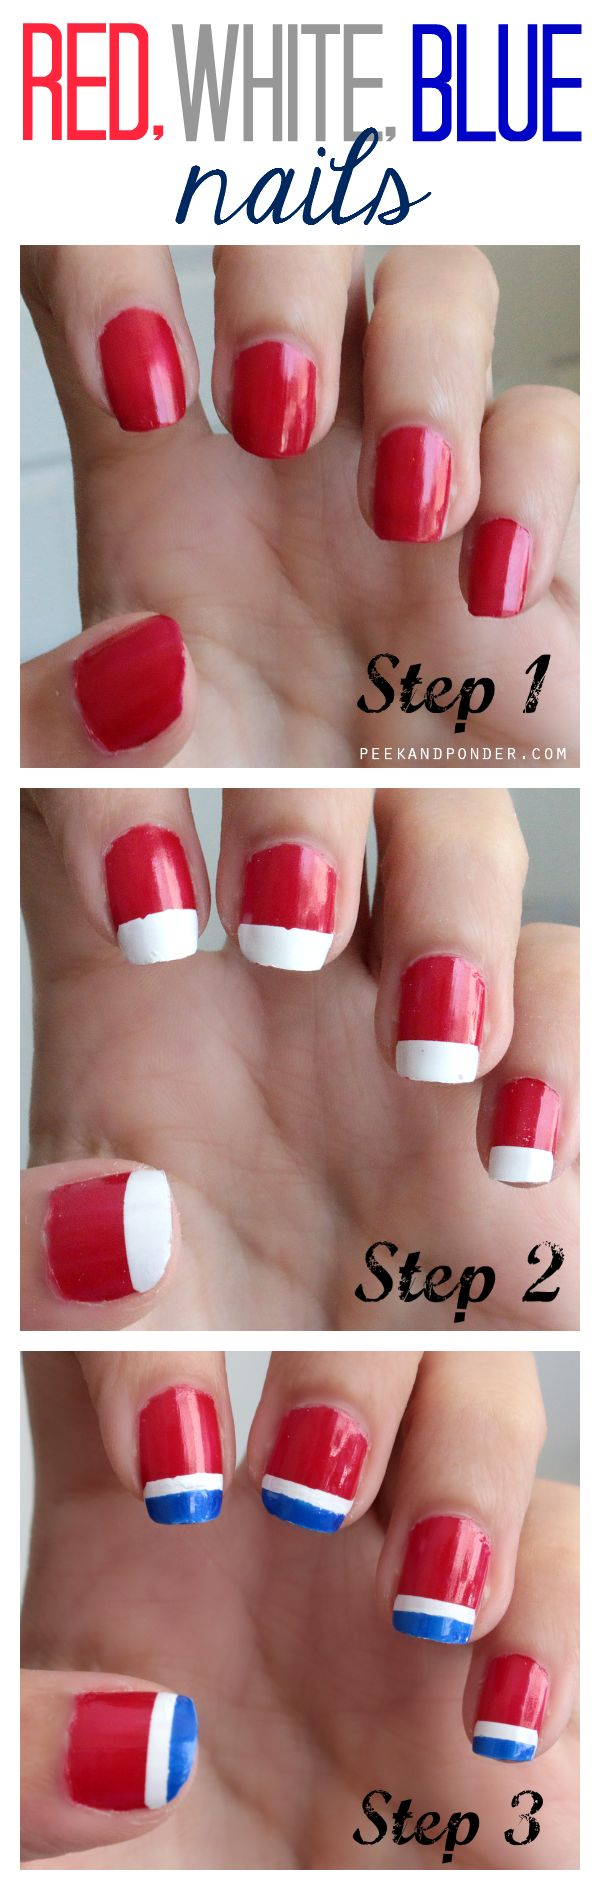 manicure - Need a quick idea for a patriotic manicure? Try this ...